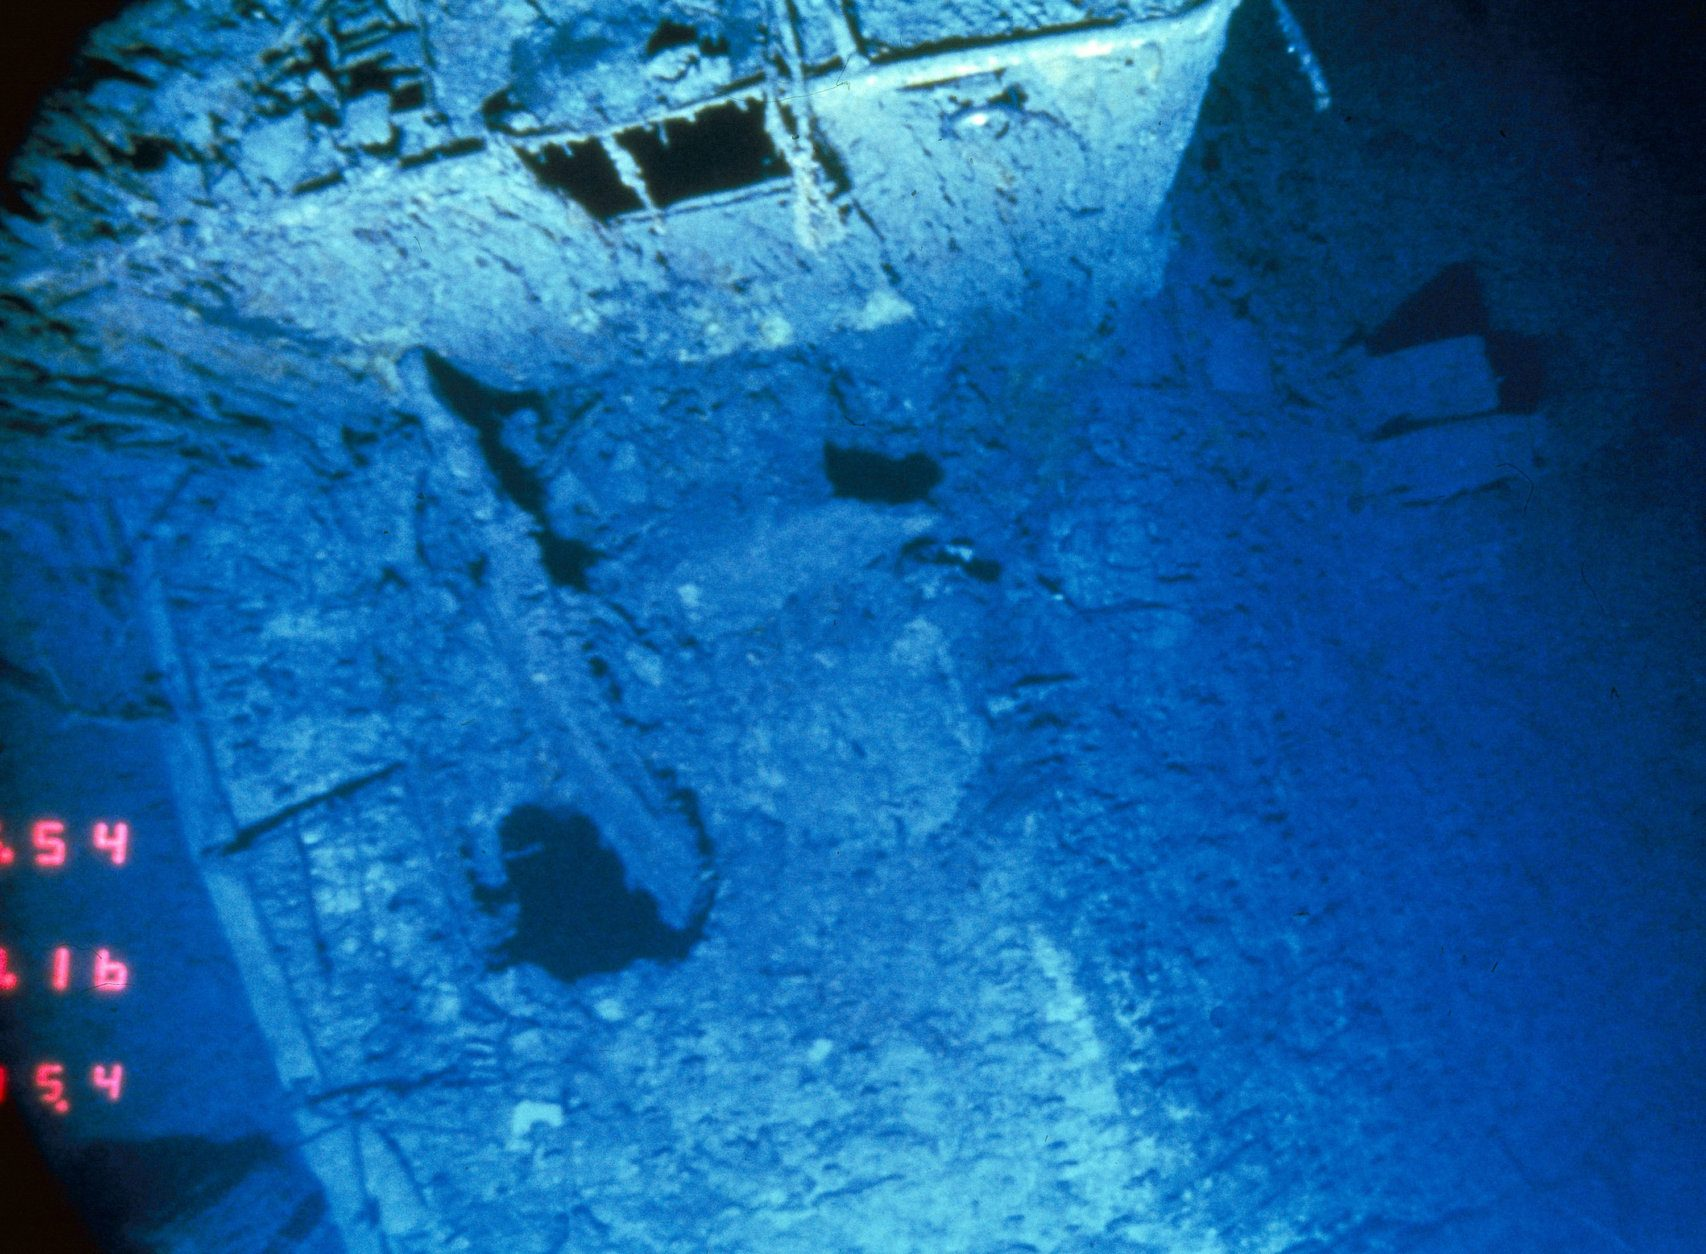 This is a view looking down on the deck of the R.M.S. Titanic between the number 2 and number 3 stack where the deck suddenly hinges downward at right towards the tear, at which point the stern separated from the rest of the ship. This picture was taken by Angus, an unmanned camera sled which is towed across Titanic, July 18, 1986. (AP Photo/Woods Hole Oceangraphic Inst.)